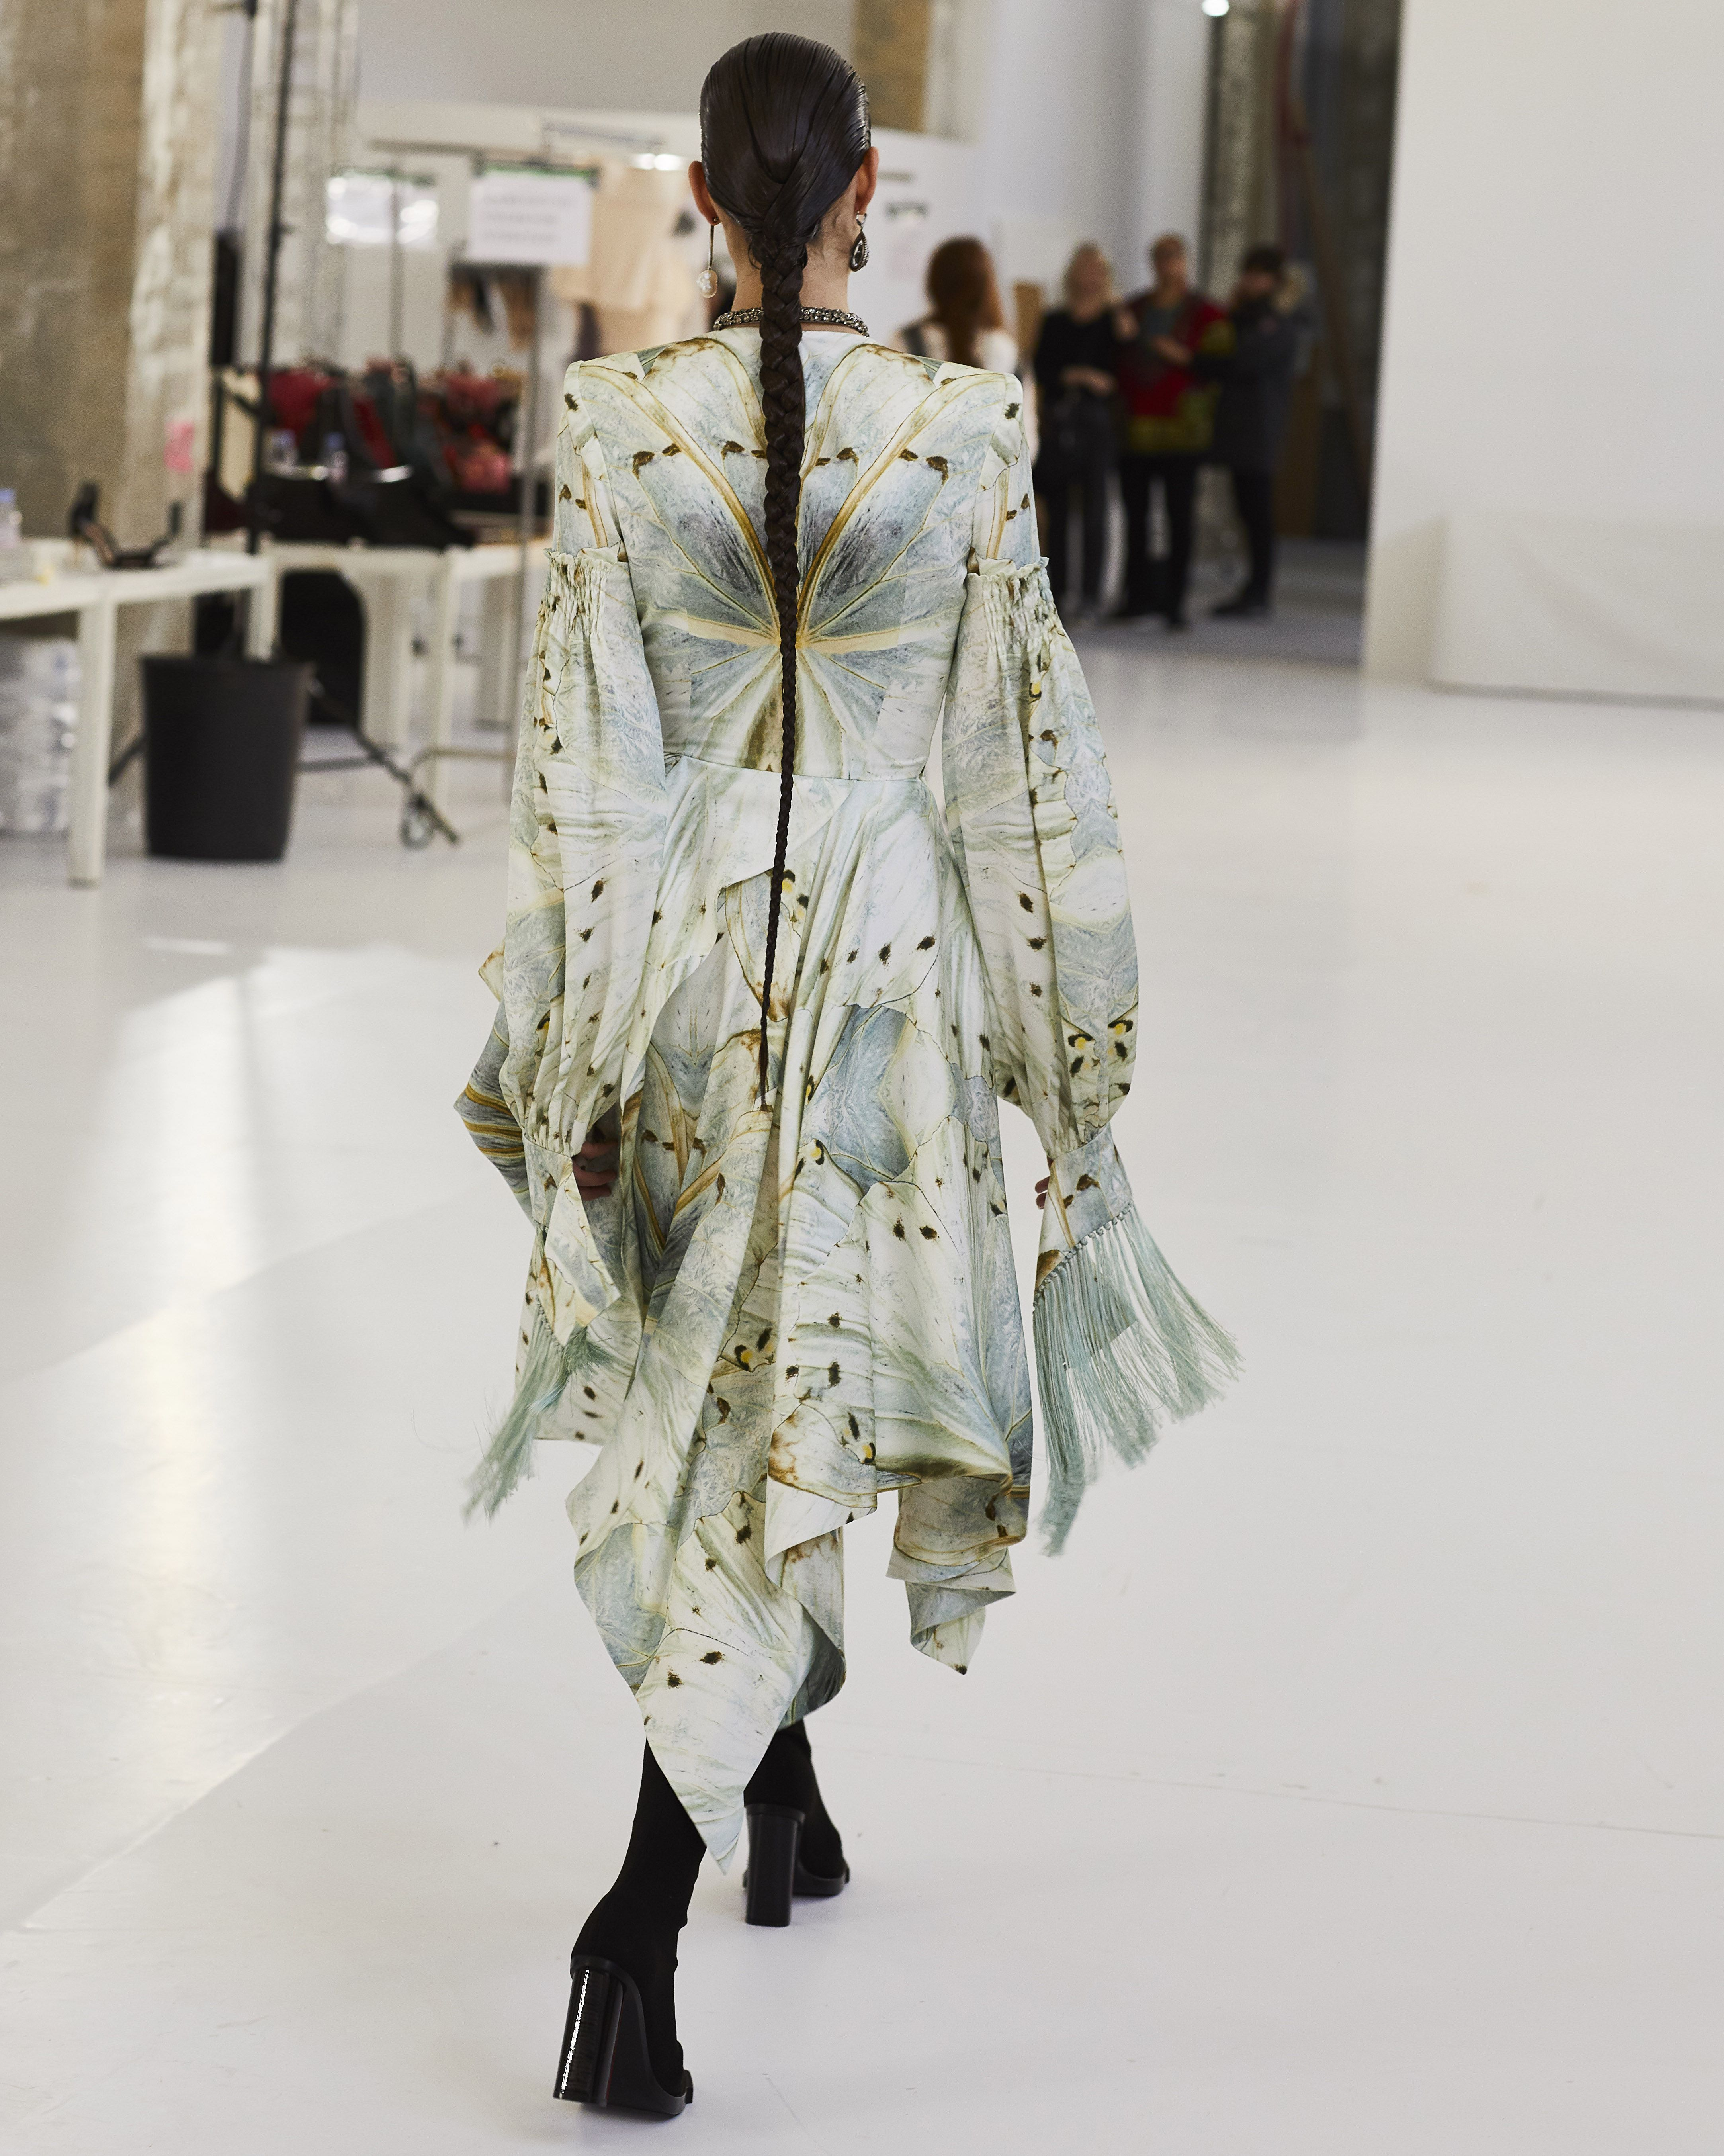 6378610d163 A silk dress is dappled with delicate glass wing butterfly prints.  Photographed by Sir Don McCullin in the atelier in the run up to the  Alexander McQueen ...